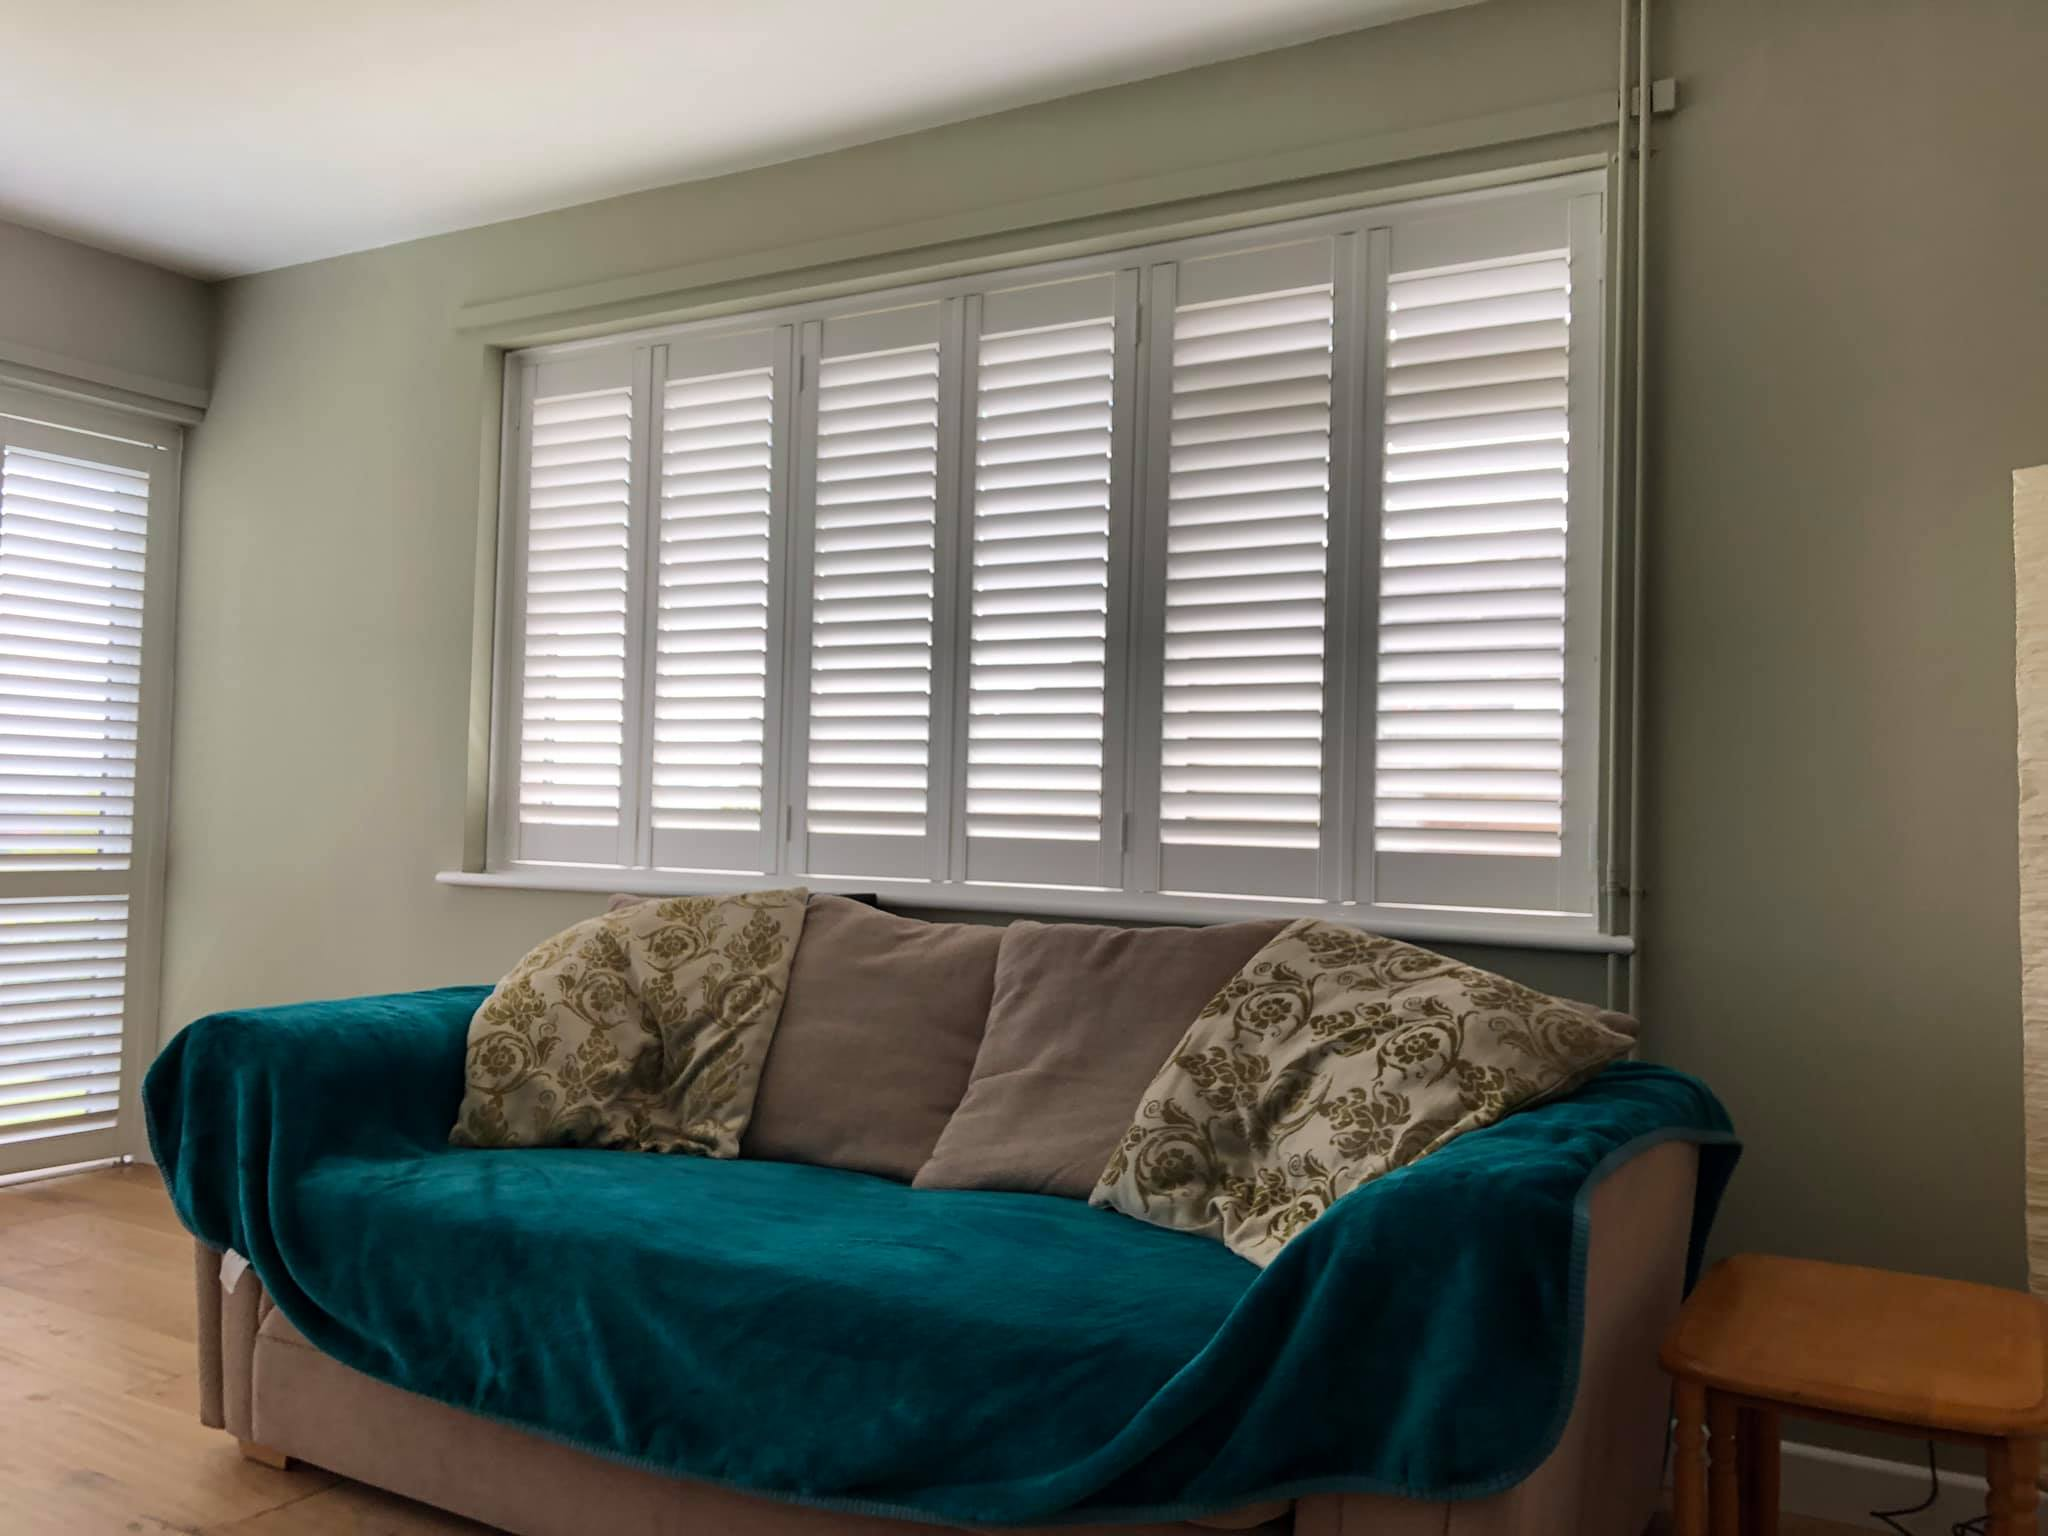 Window Shutters supplied and fitted